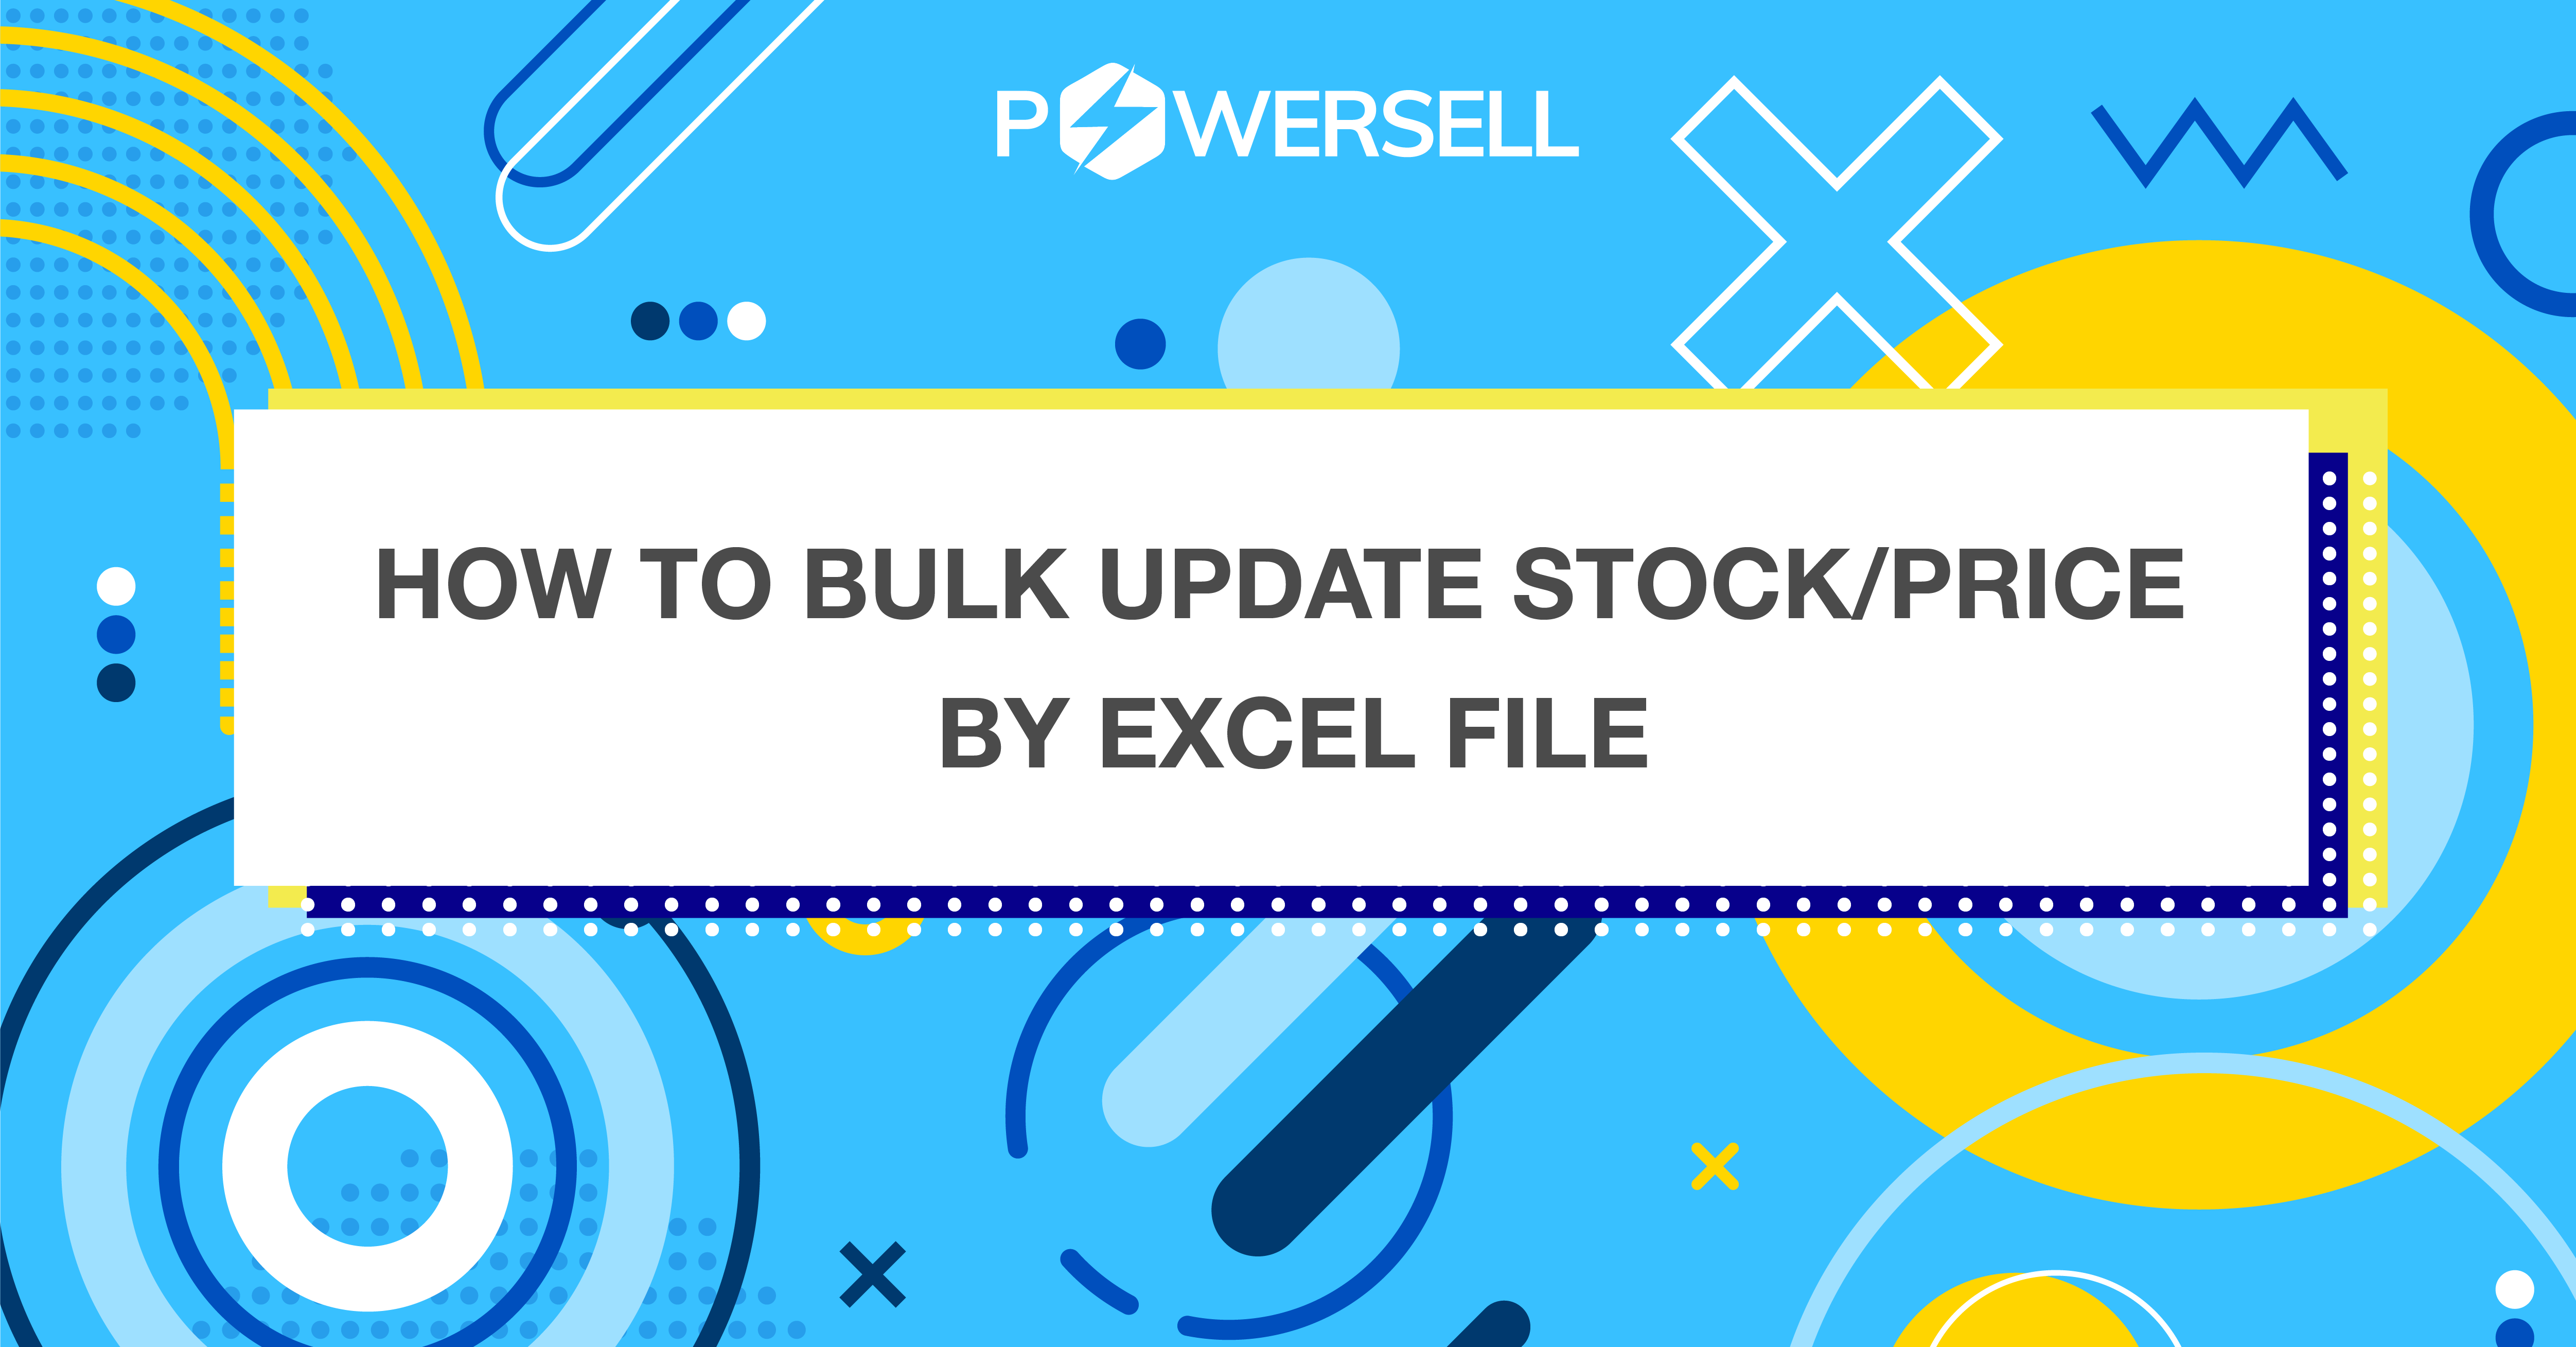 How to bulk update stock/price by excel file